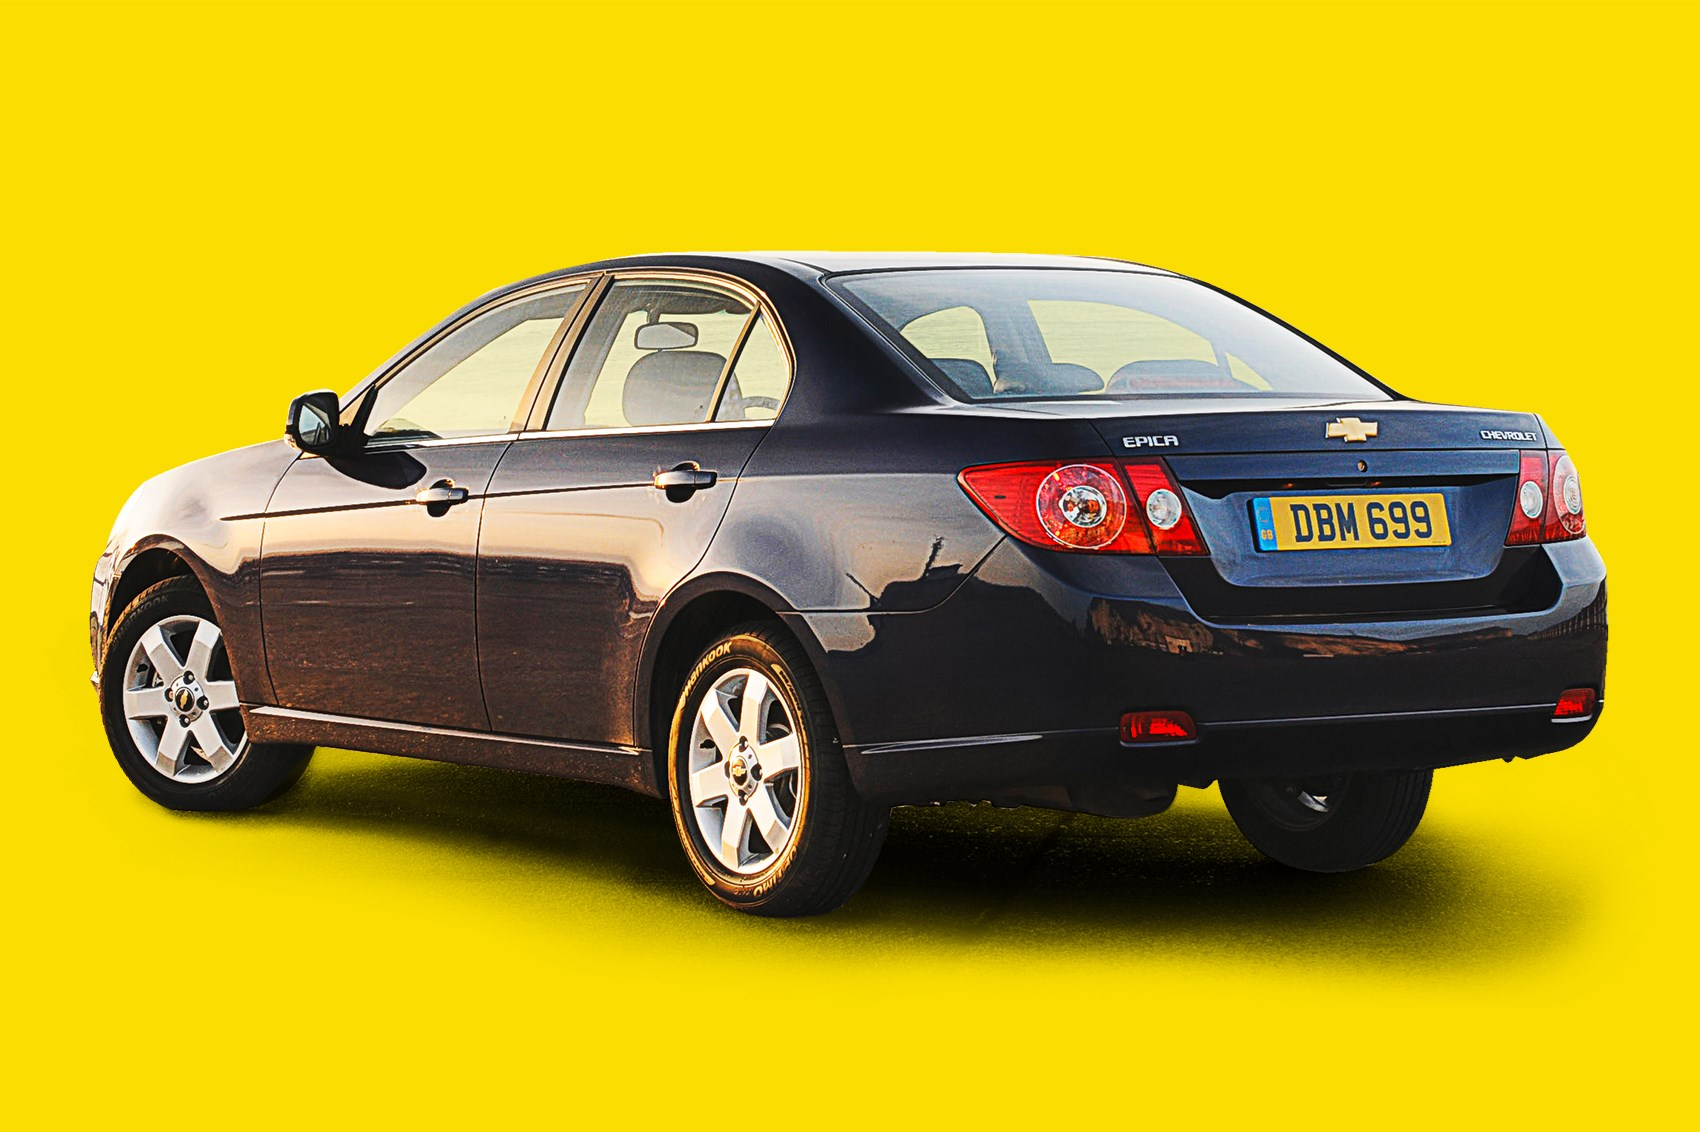 The CAR Top 10 rubbish cars that made an early exit